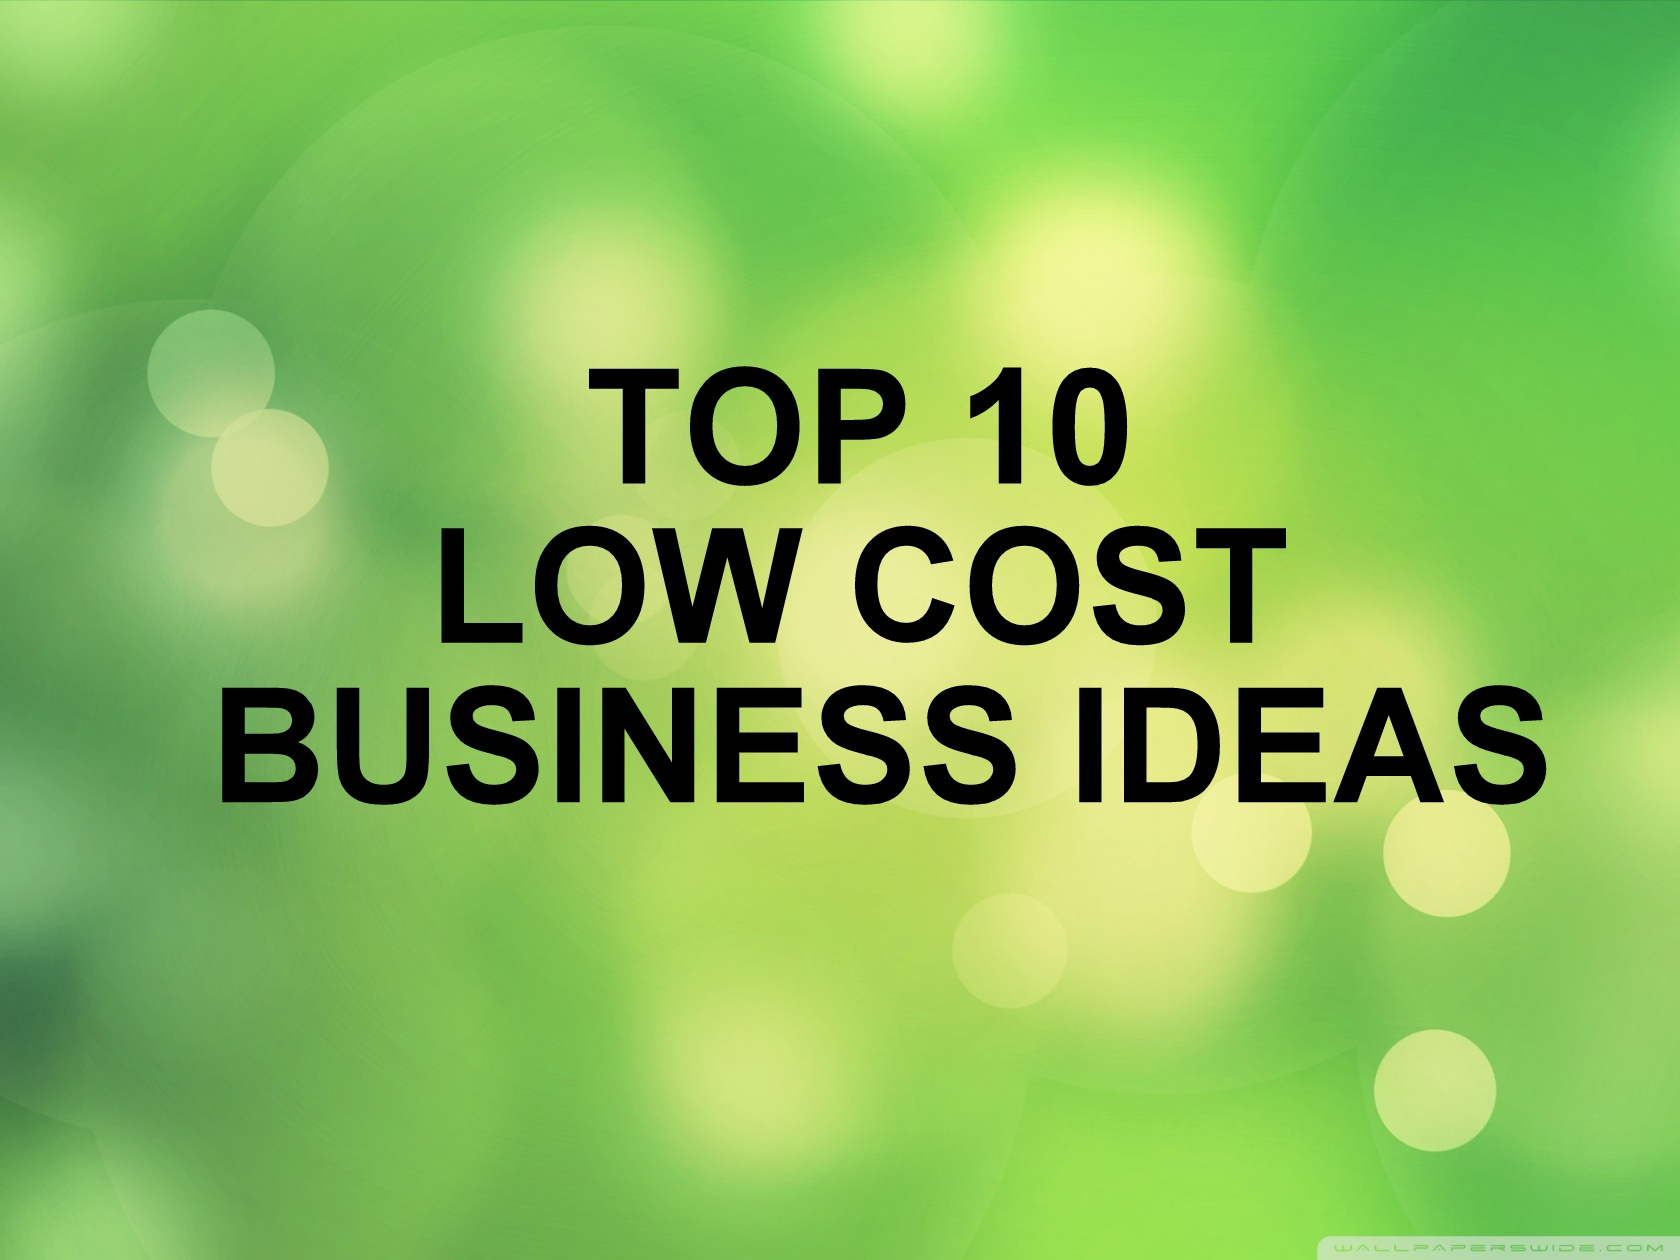 Top Low Cost Business Ideas Entreprenoria